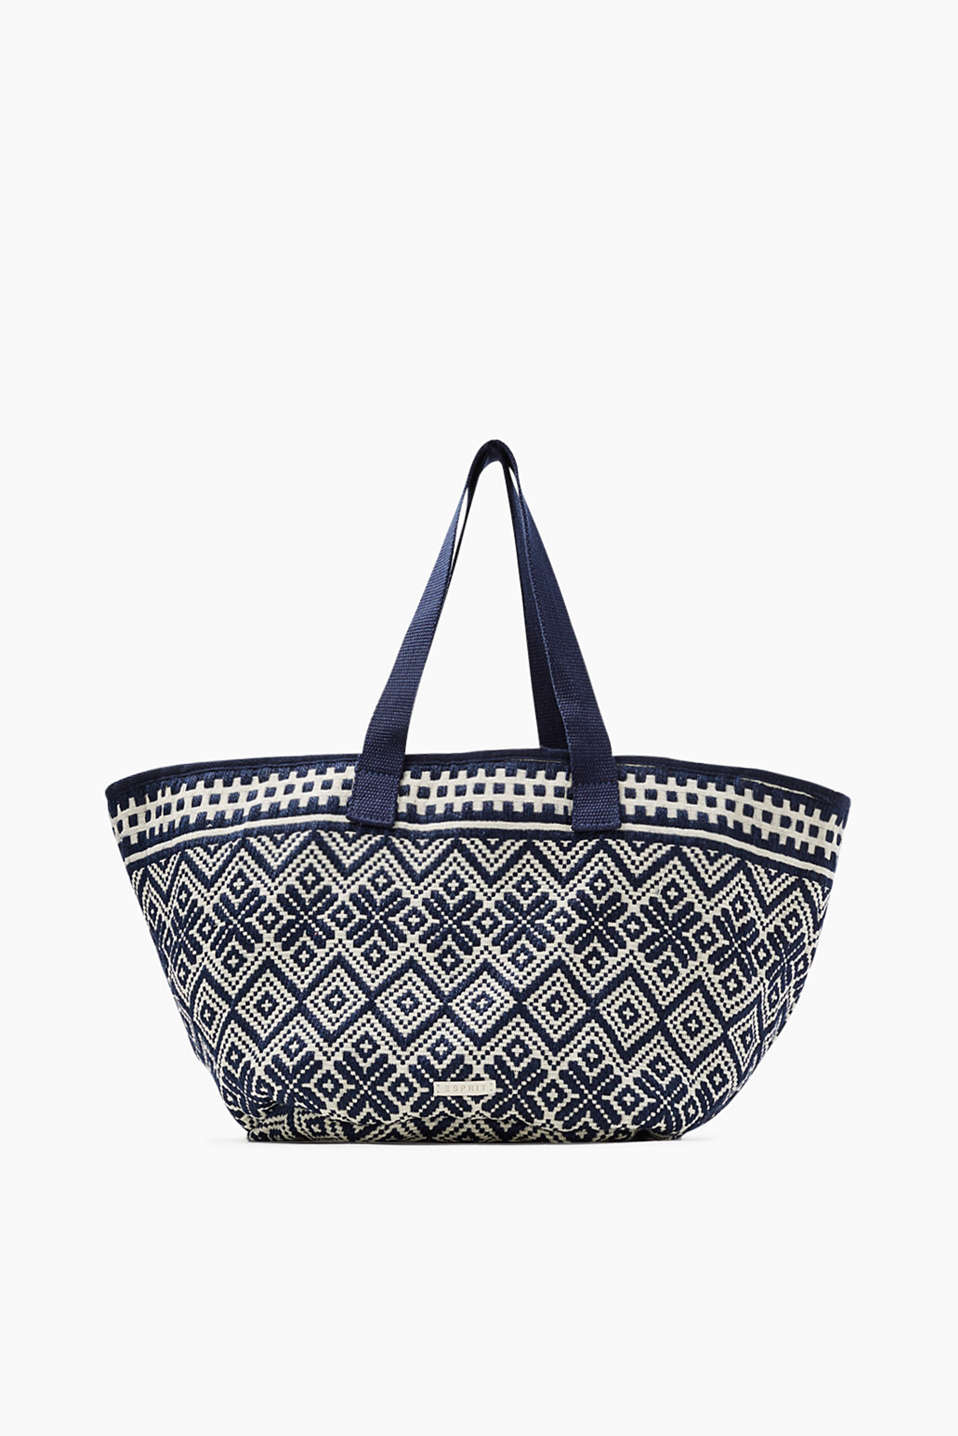 Ethnic-look shopper made of blended cotton/jute